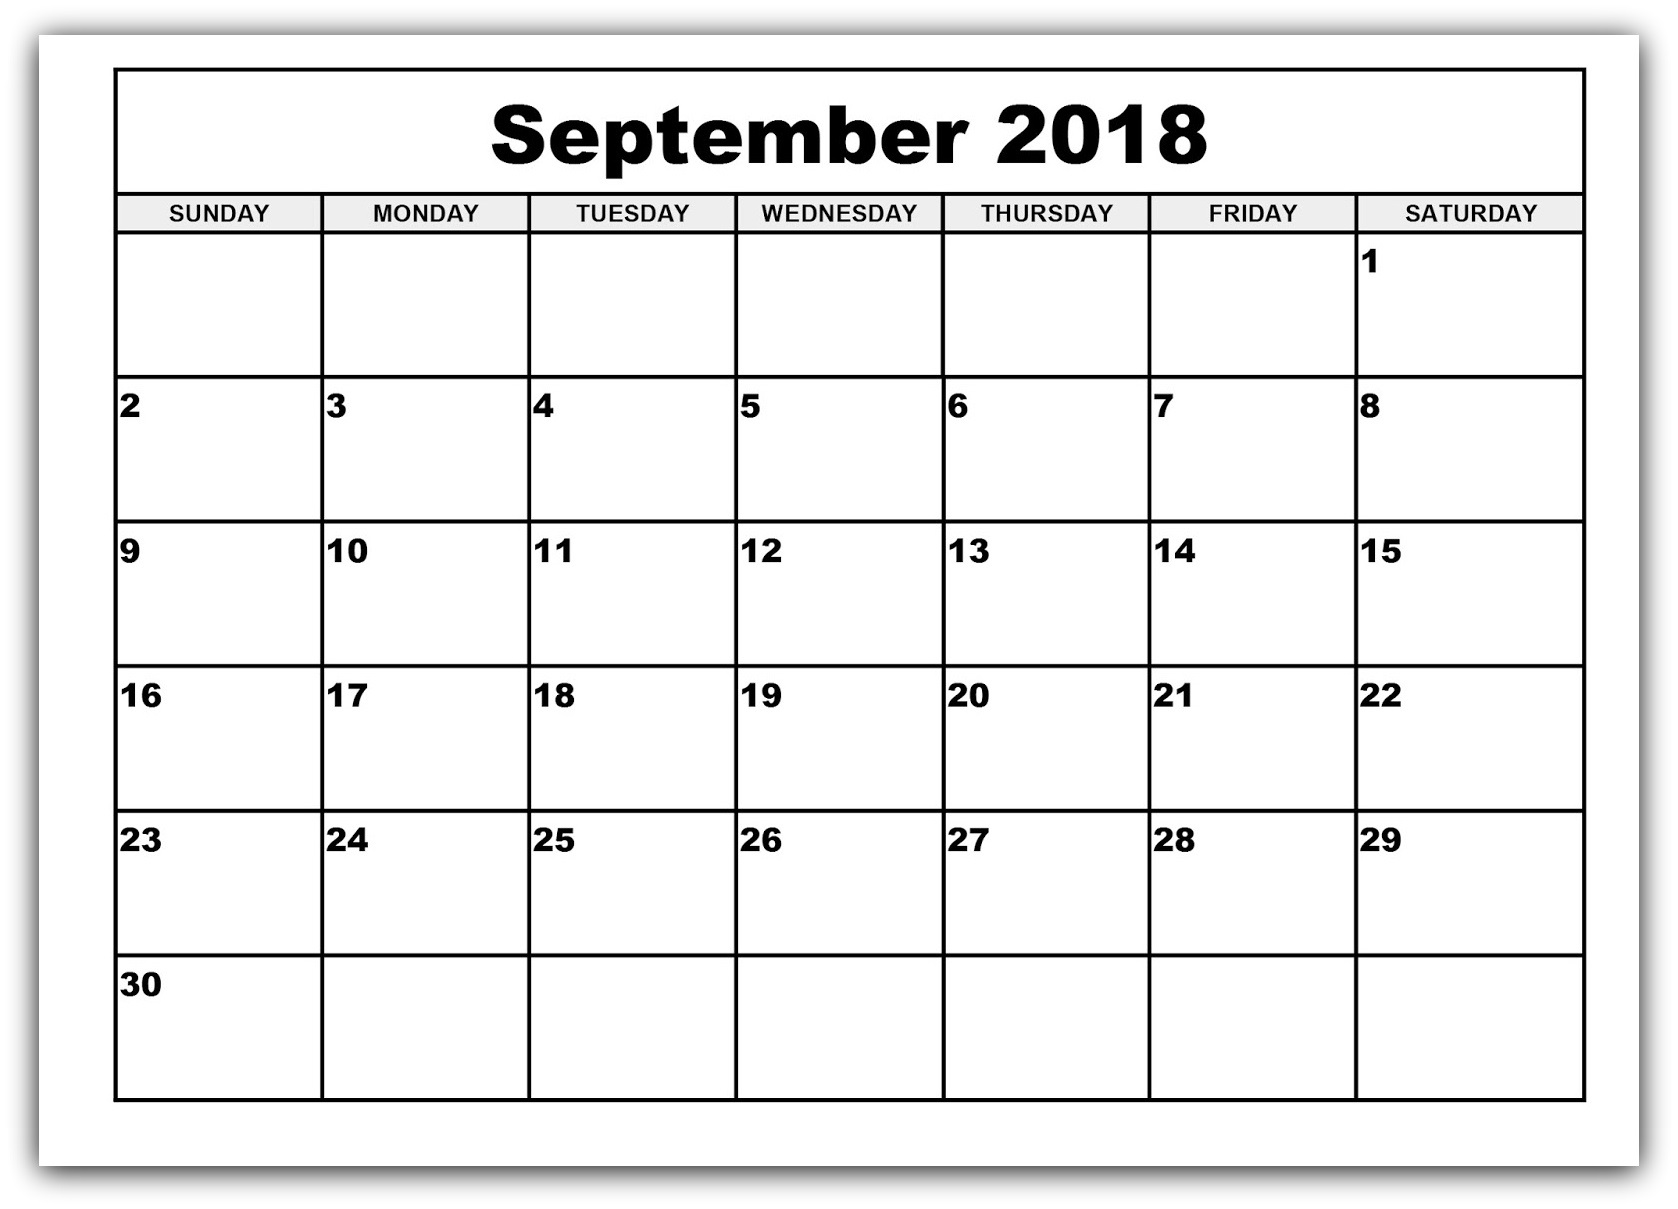 Calendar September 2018 Printable Bank Holidays